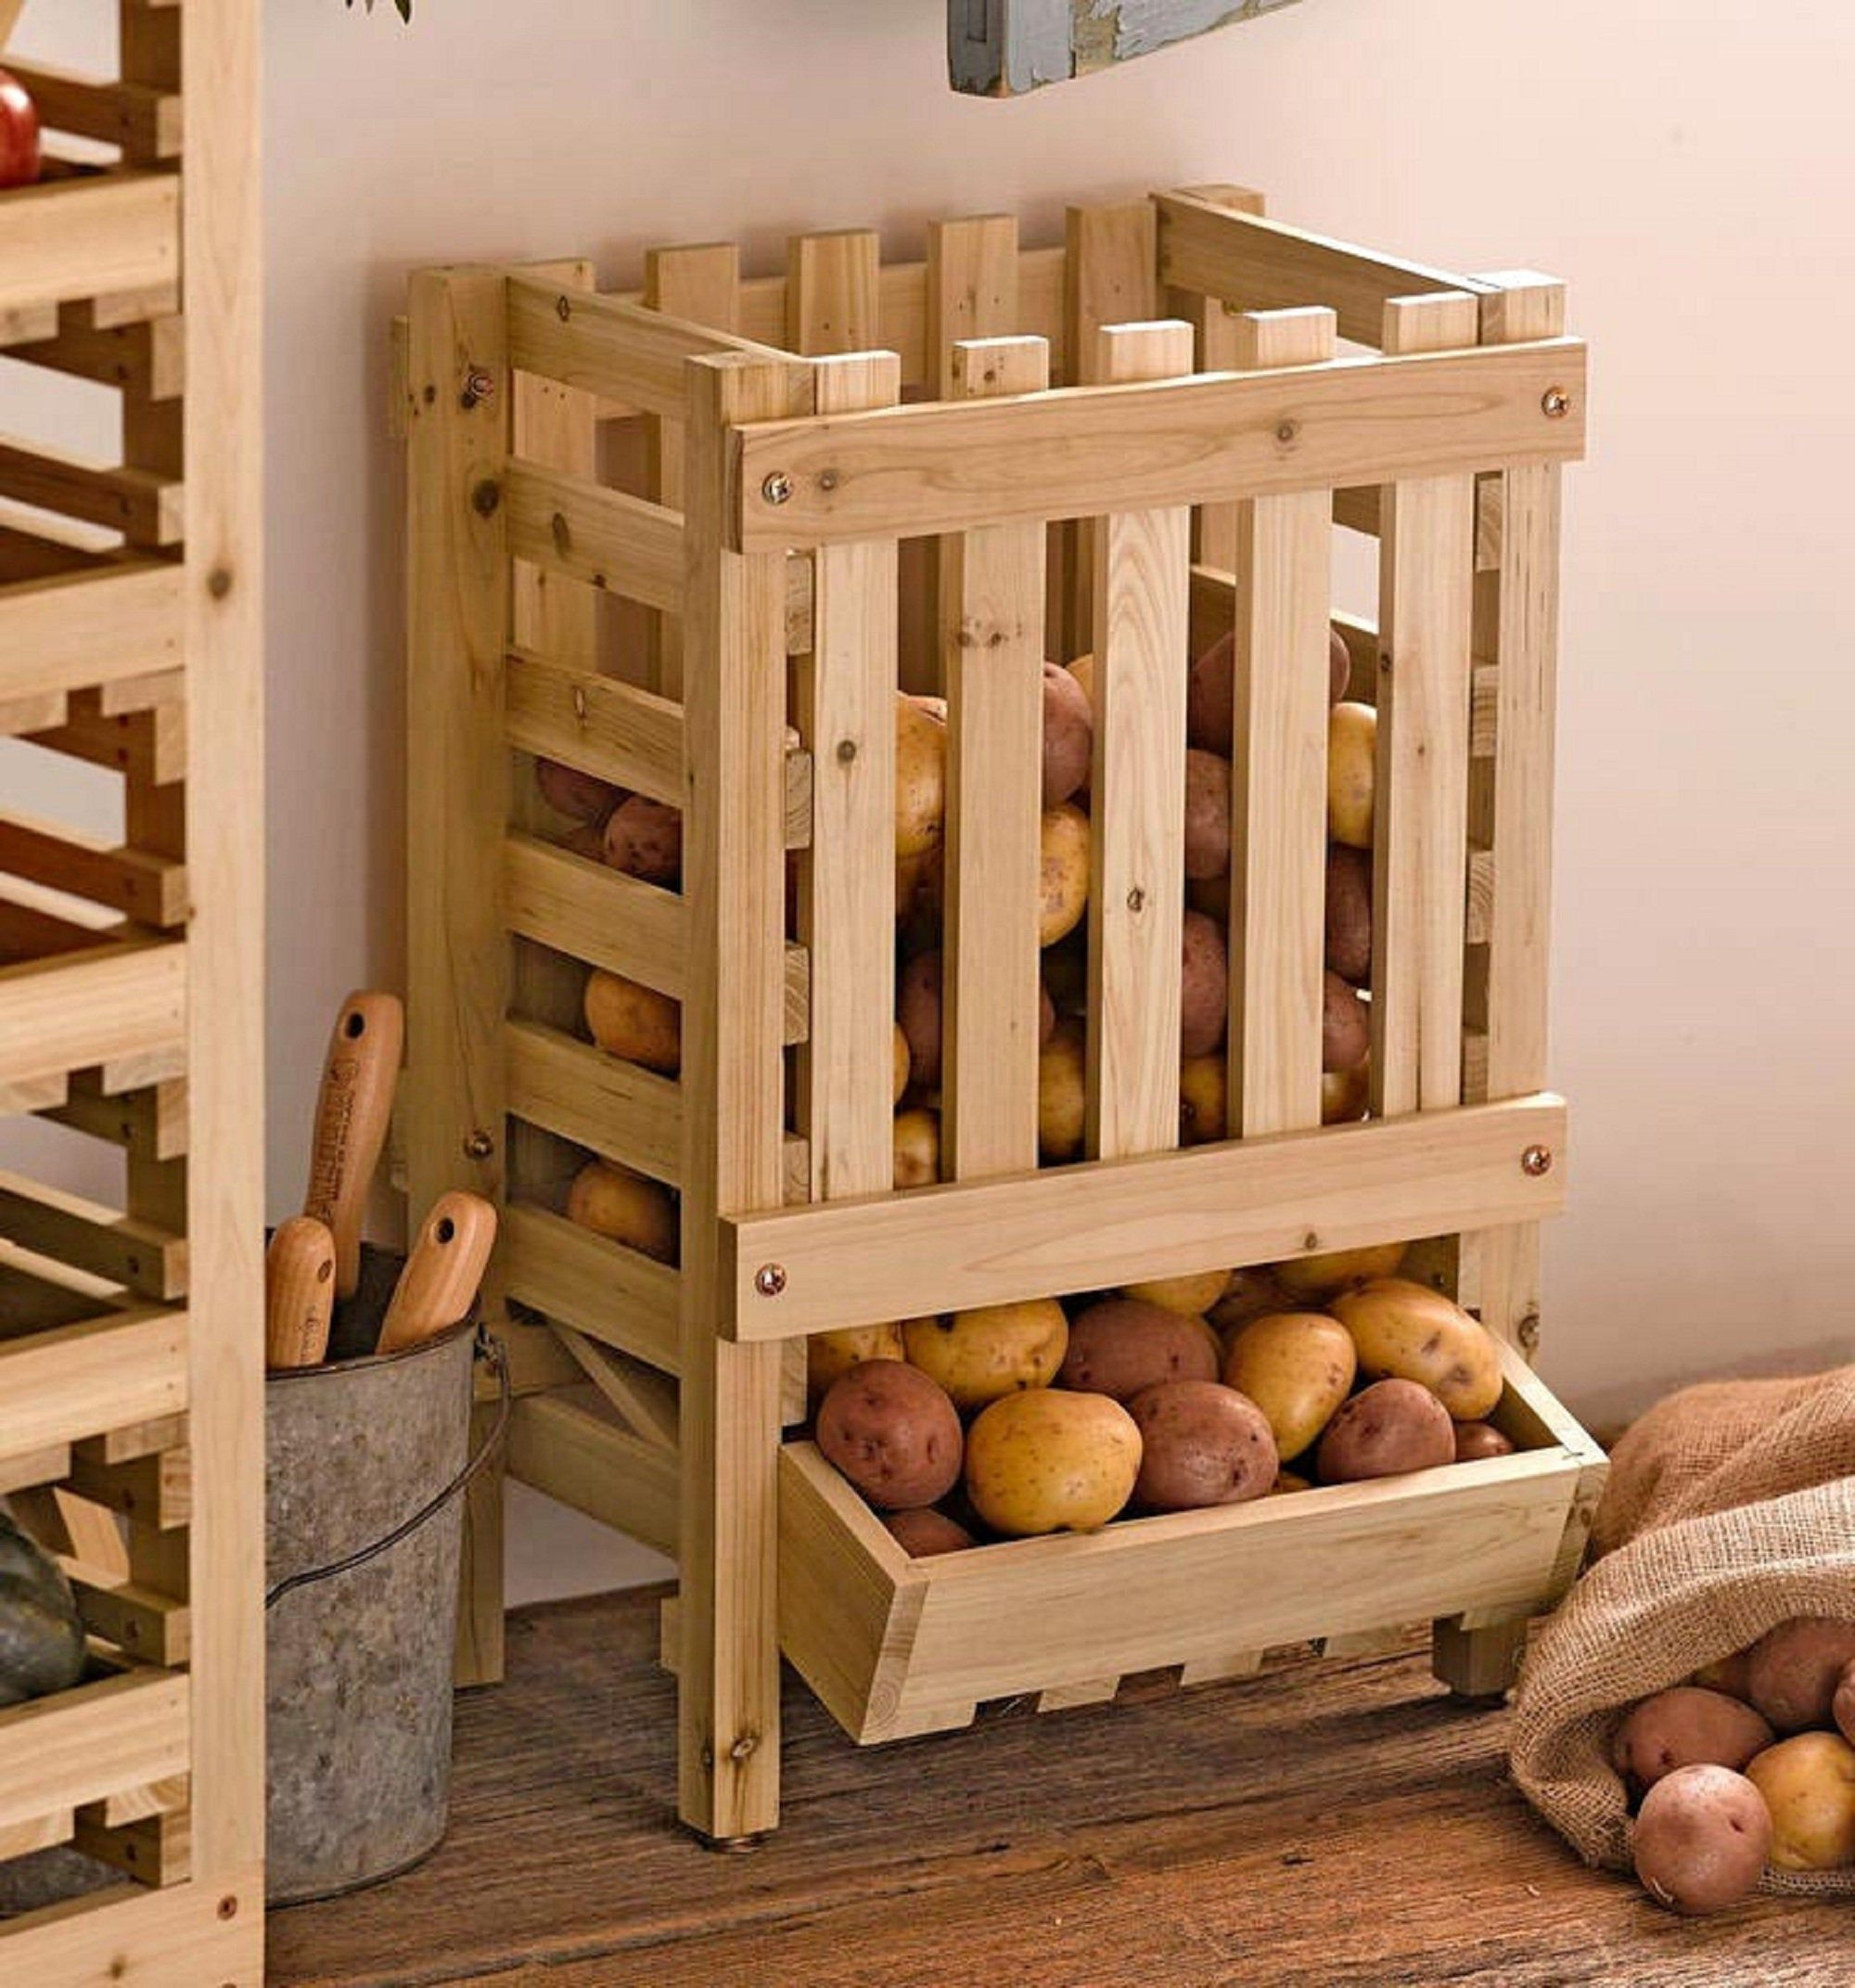 Crate Kitchen Organizer Wooden Crate Apple Crate Vegetable Box Etsy In 2020 Potato Storage Rustic Outdoor Furniture Rustic Kitchen Decor